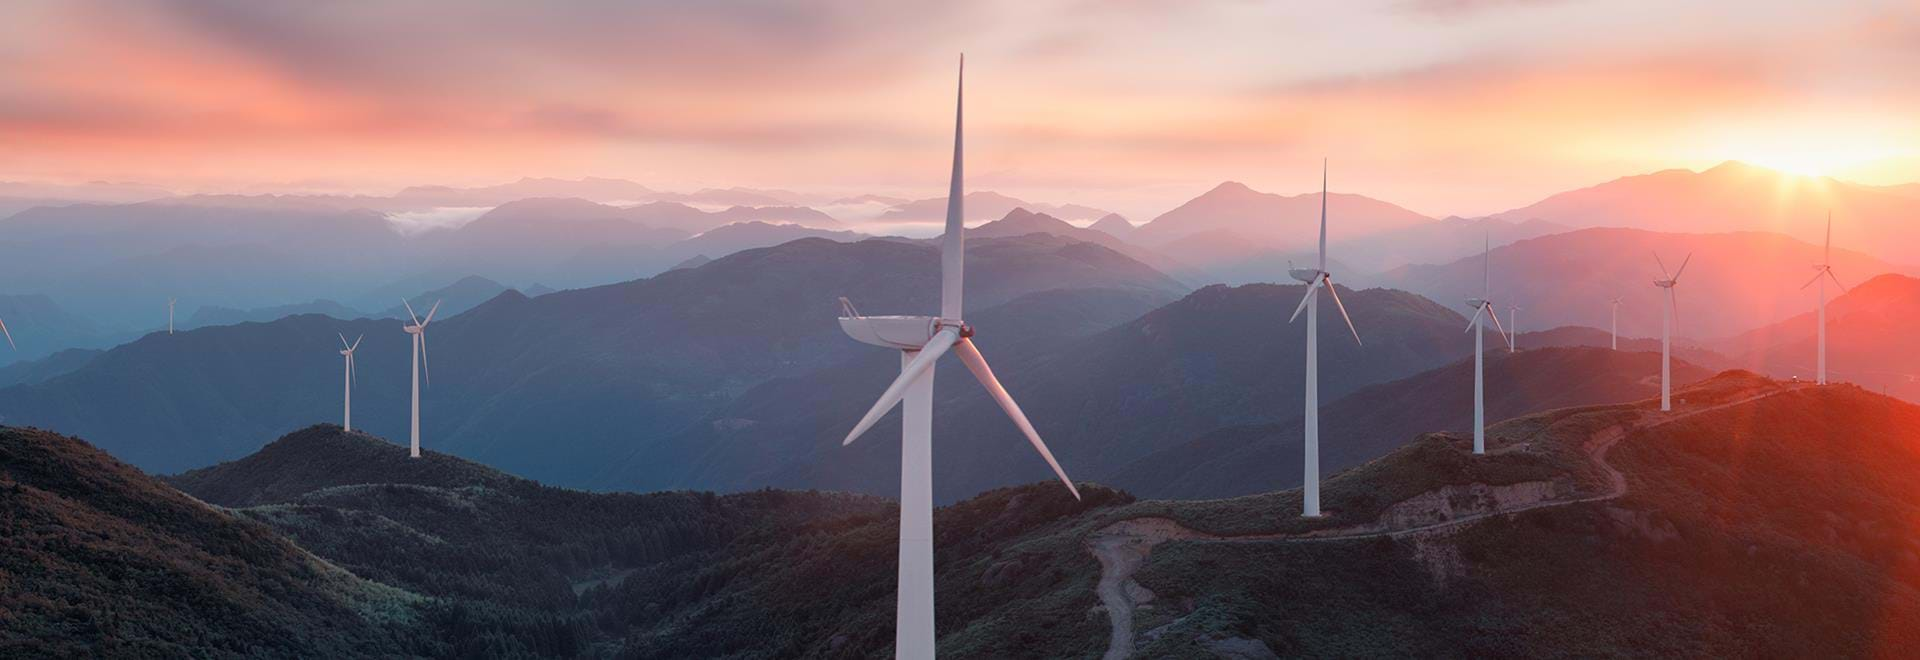 Wind turbines on the mountains